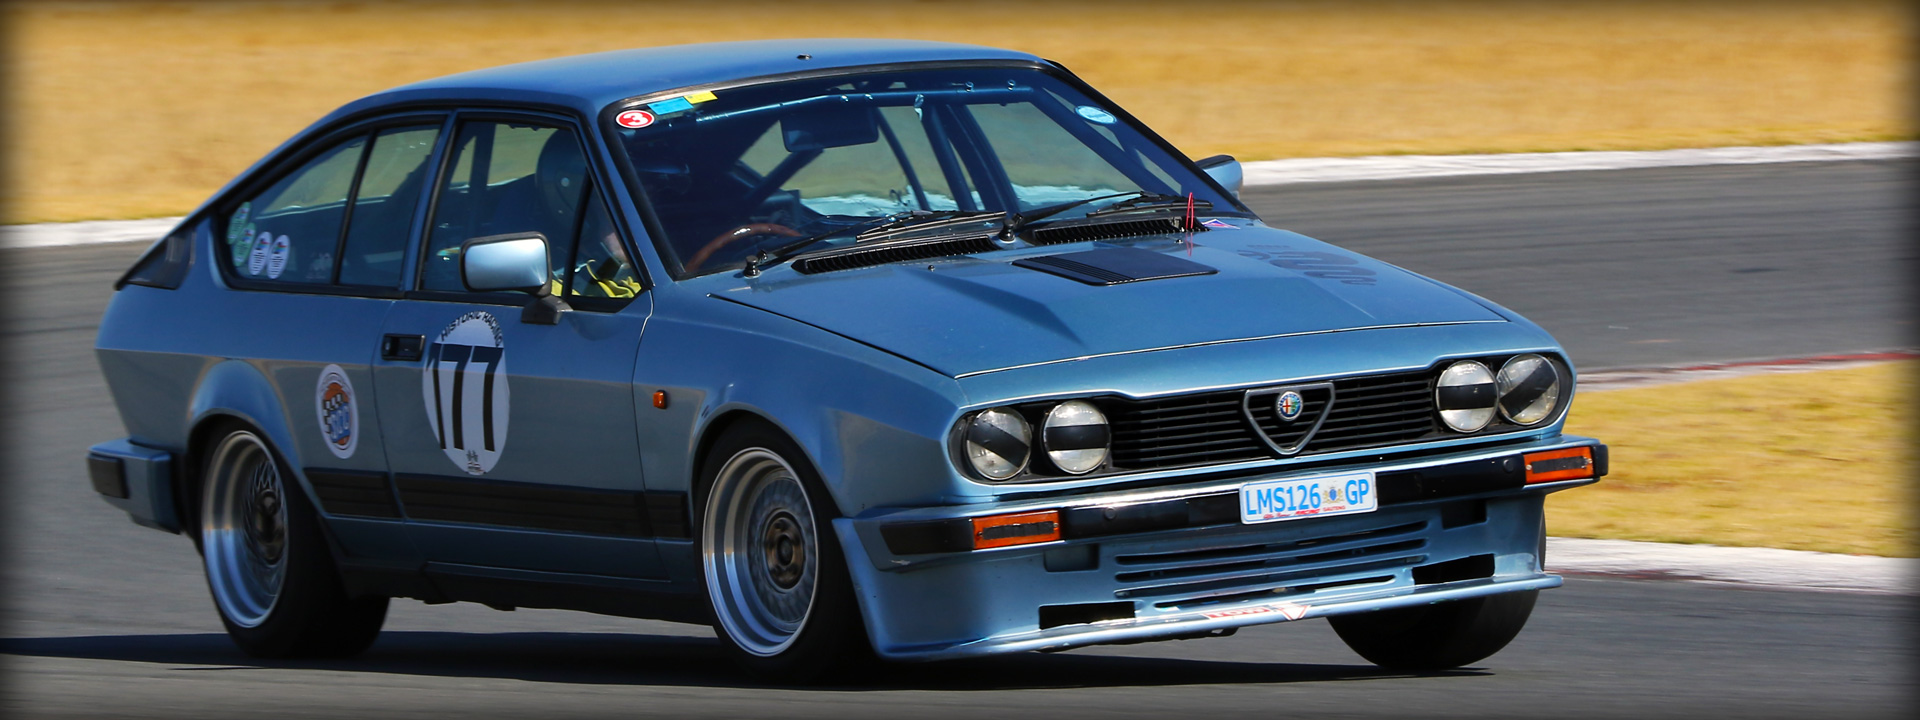 The Historic Tour at Red Star Raceway on 6 August 2016 - Race Report